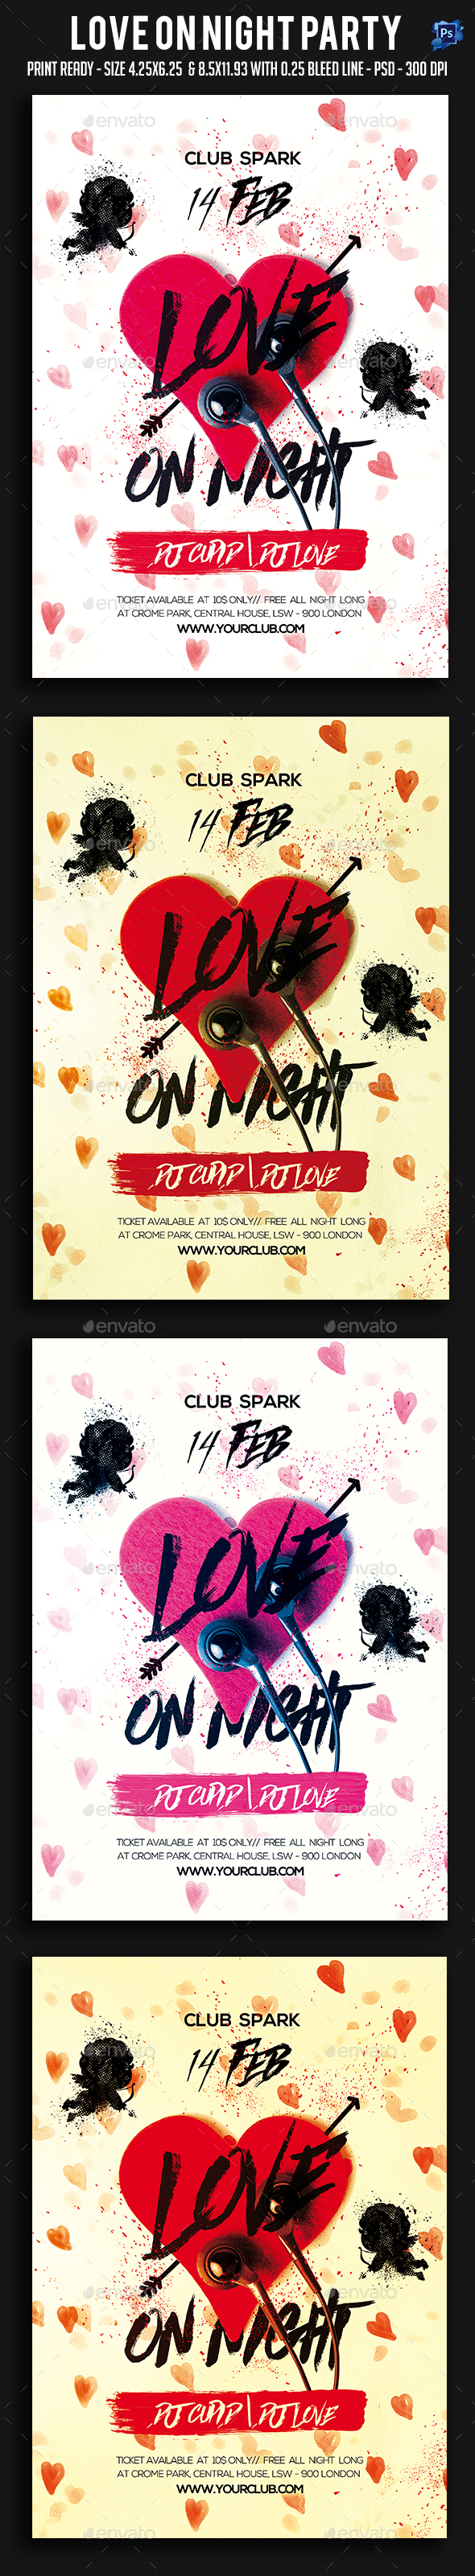 Love On Night Party Flyer - Clubs & Parties Events